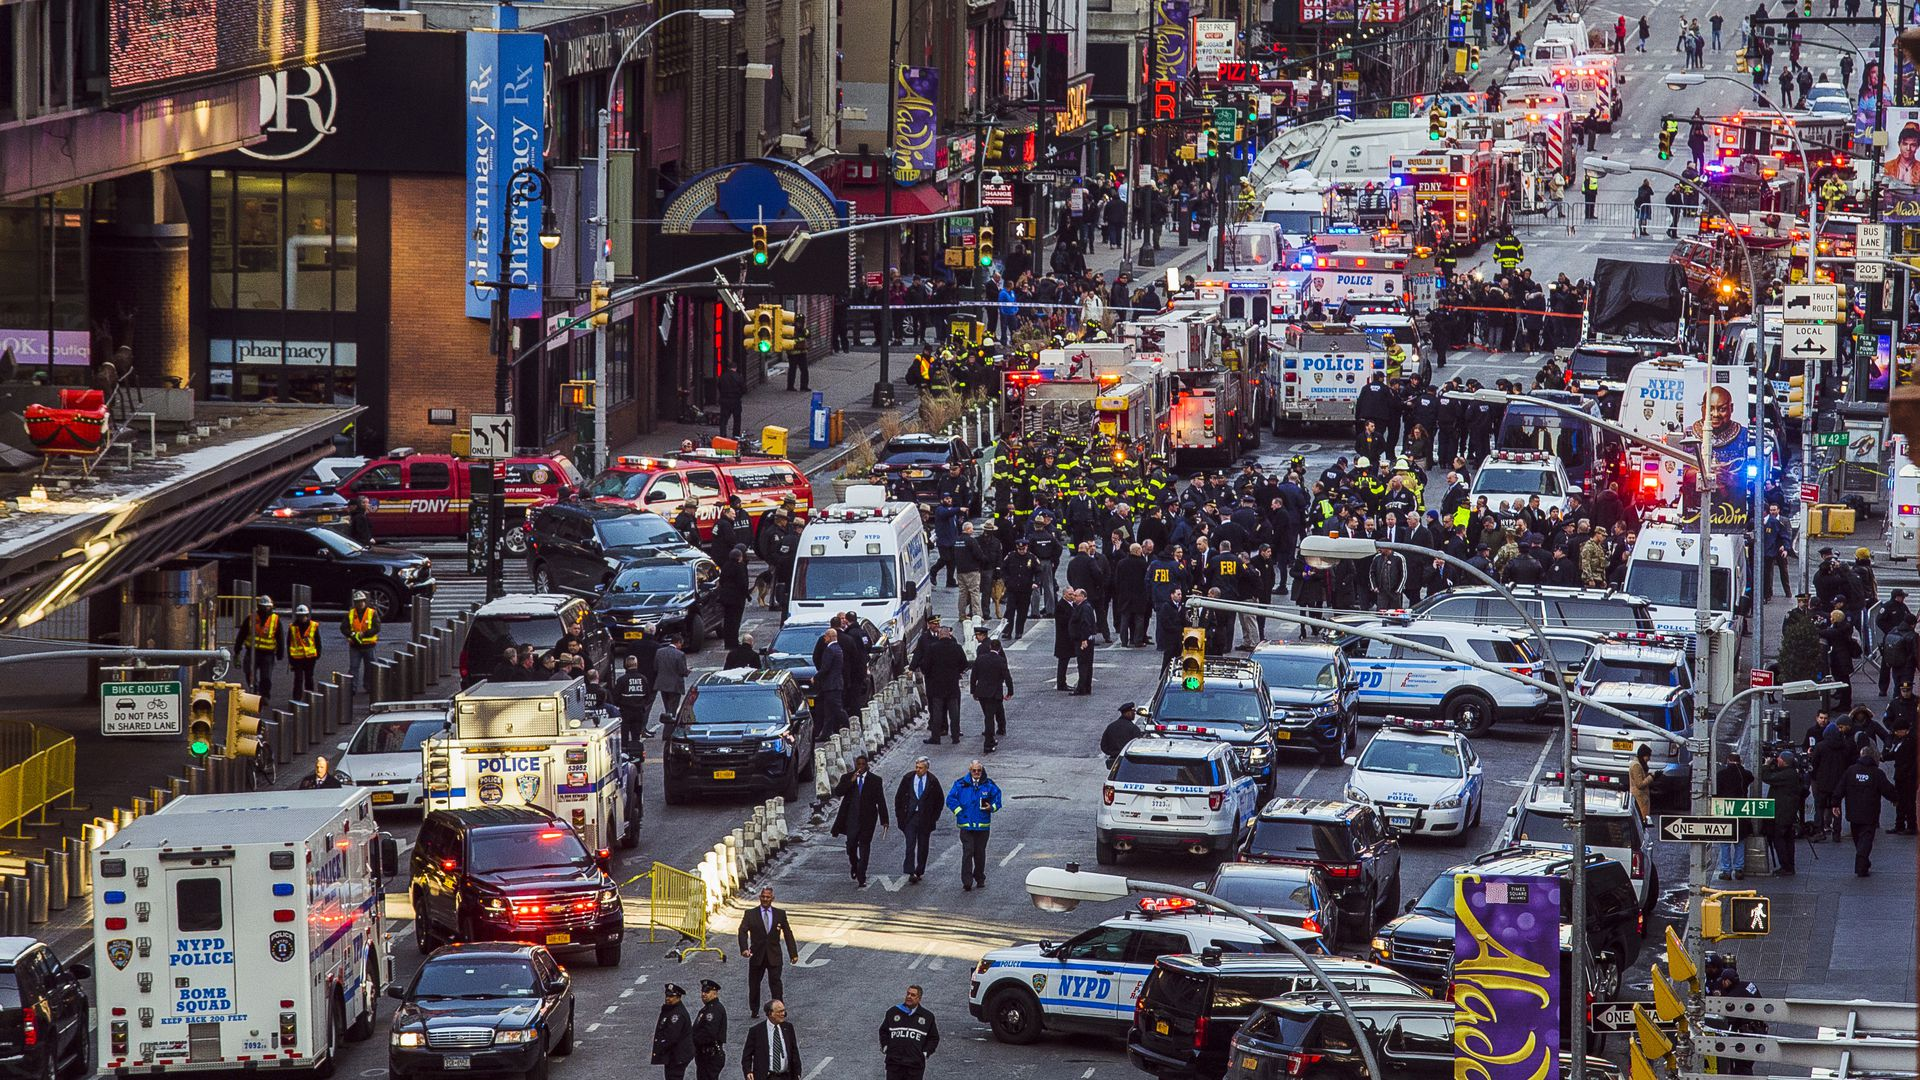 NYC explosion